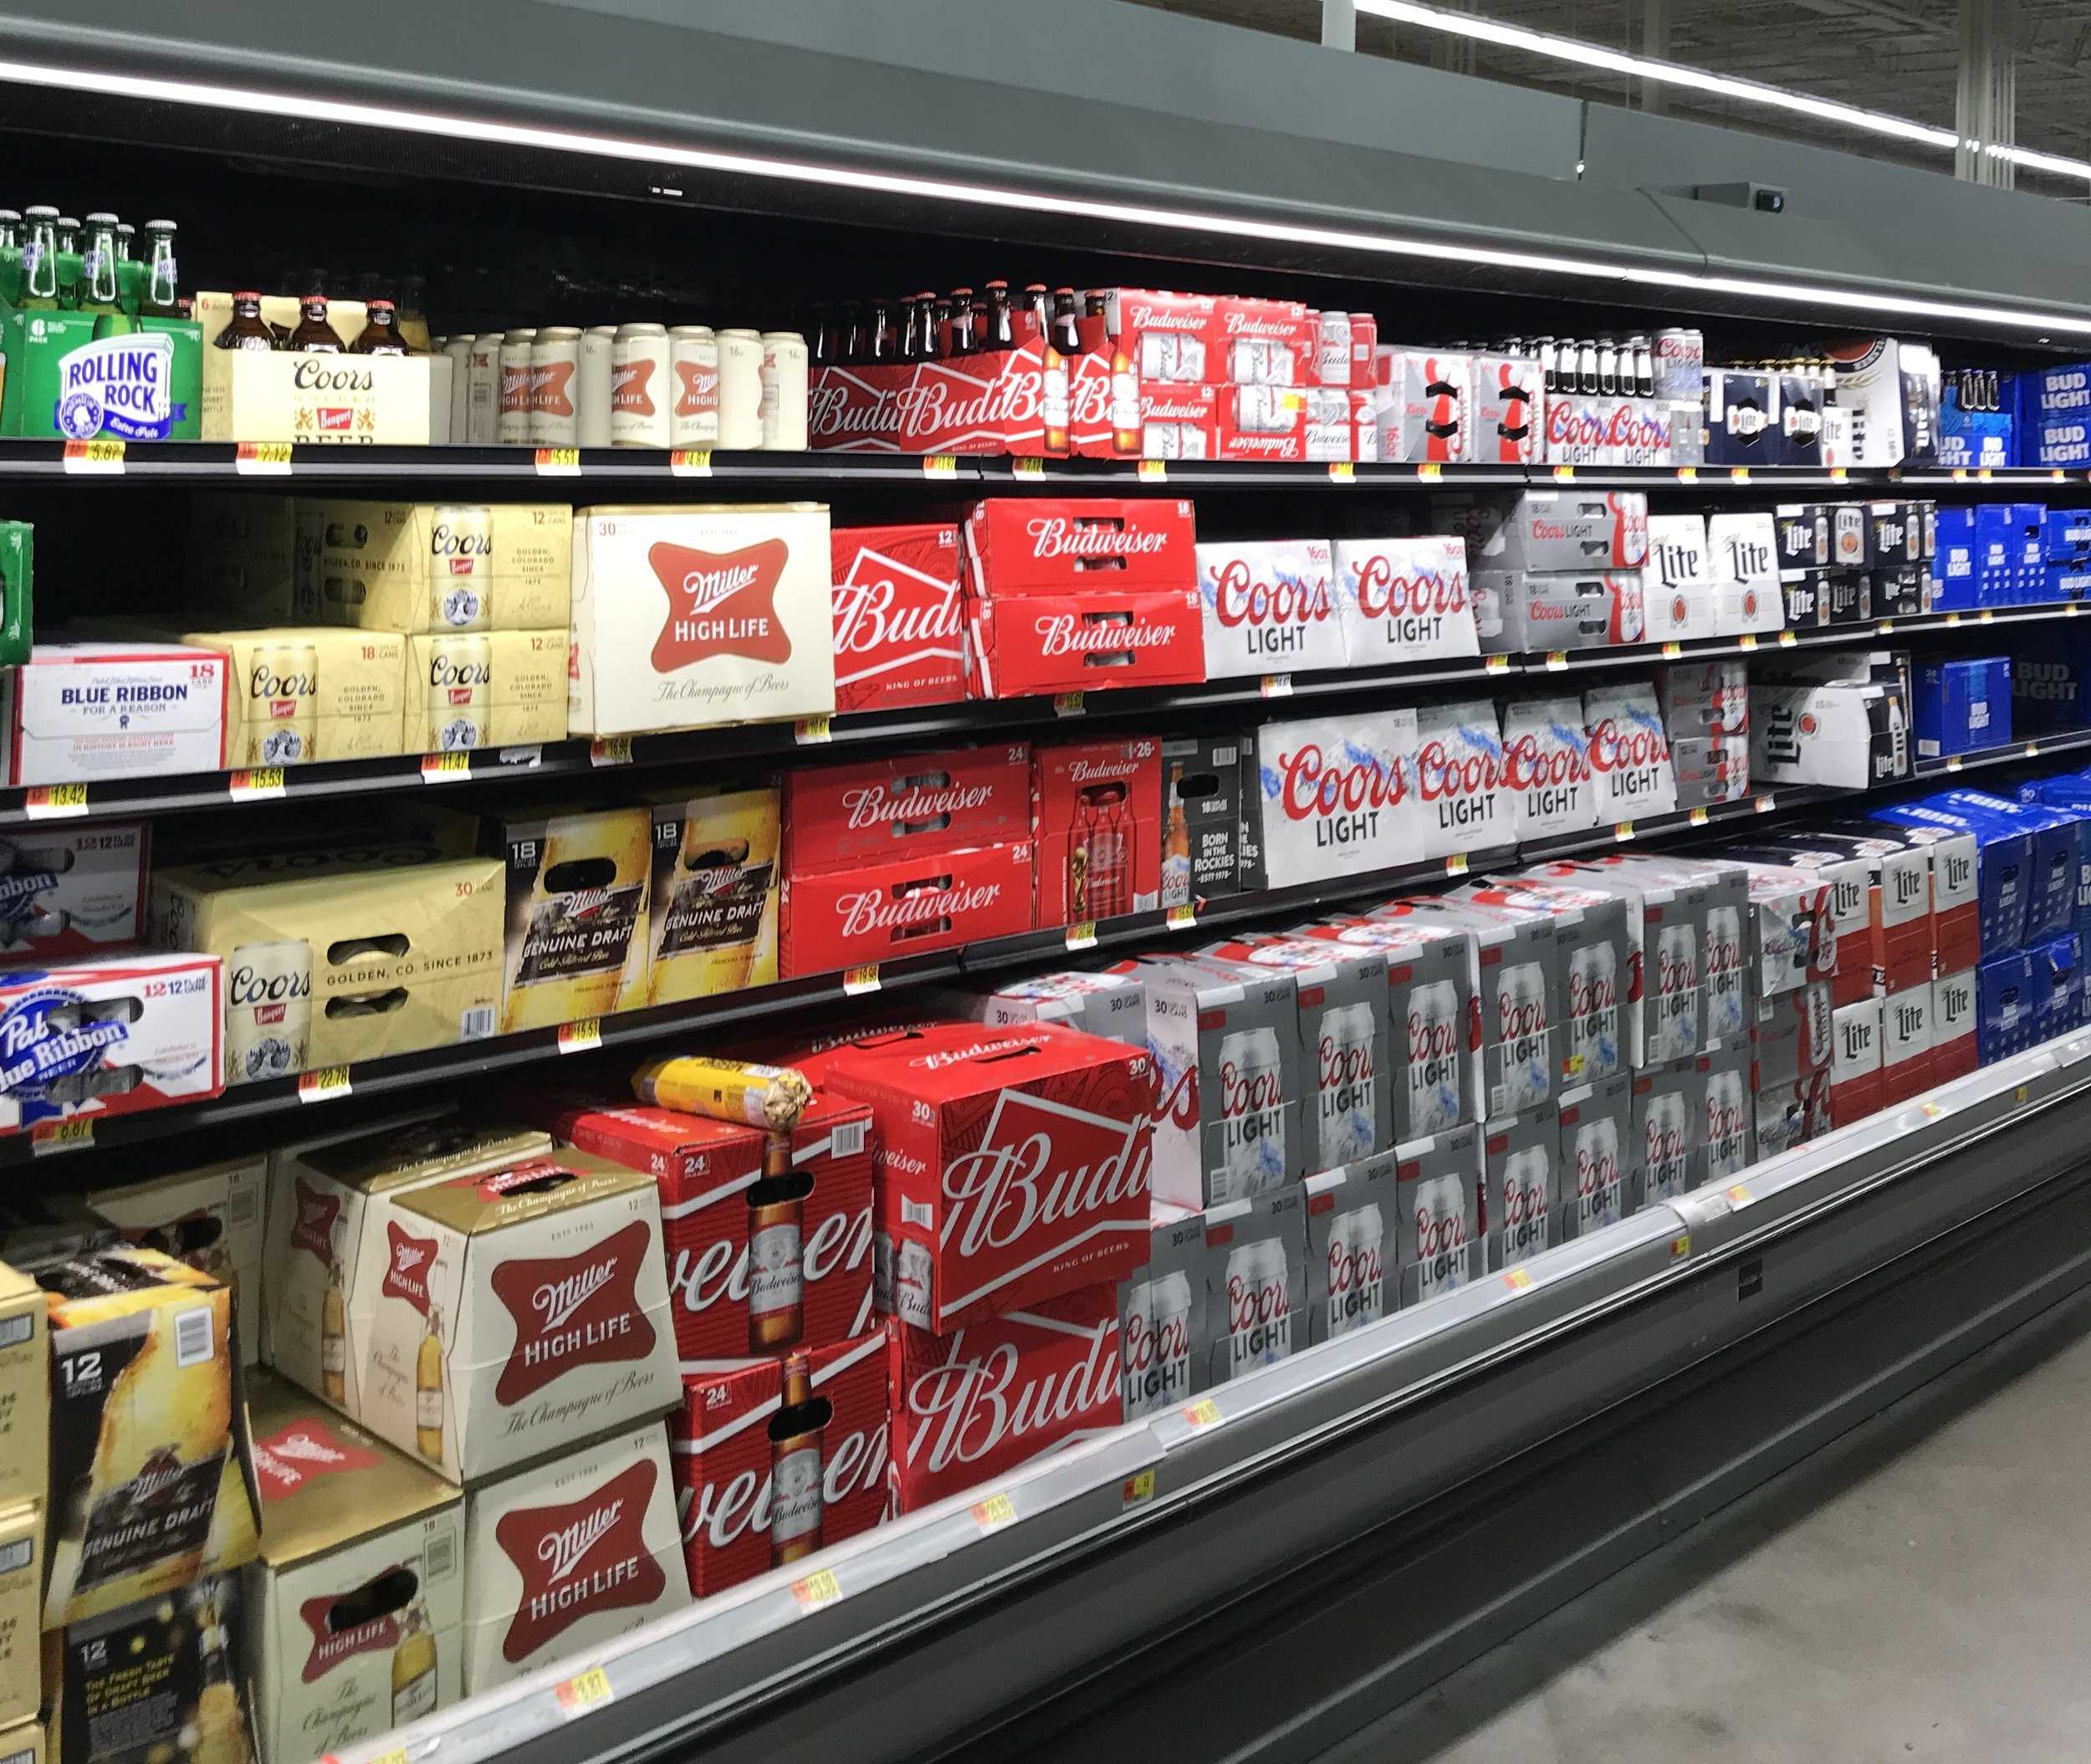 This is a picture of a grocery store's beer selection in Arizona. Let's keep our multitude of choices for consumers at liquor stores in Minnesota. -